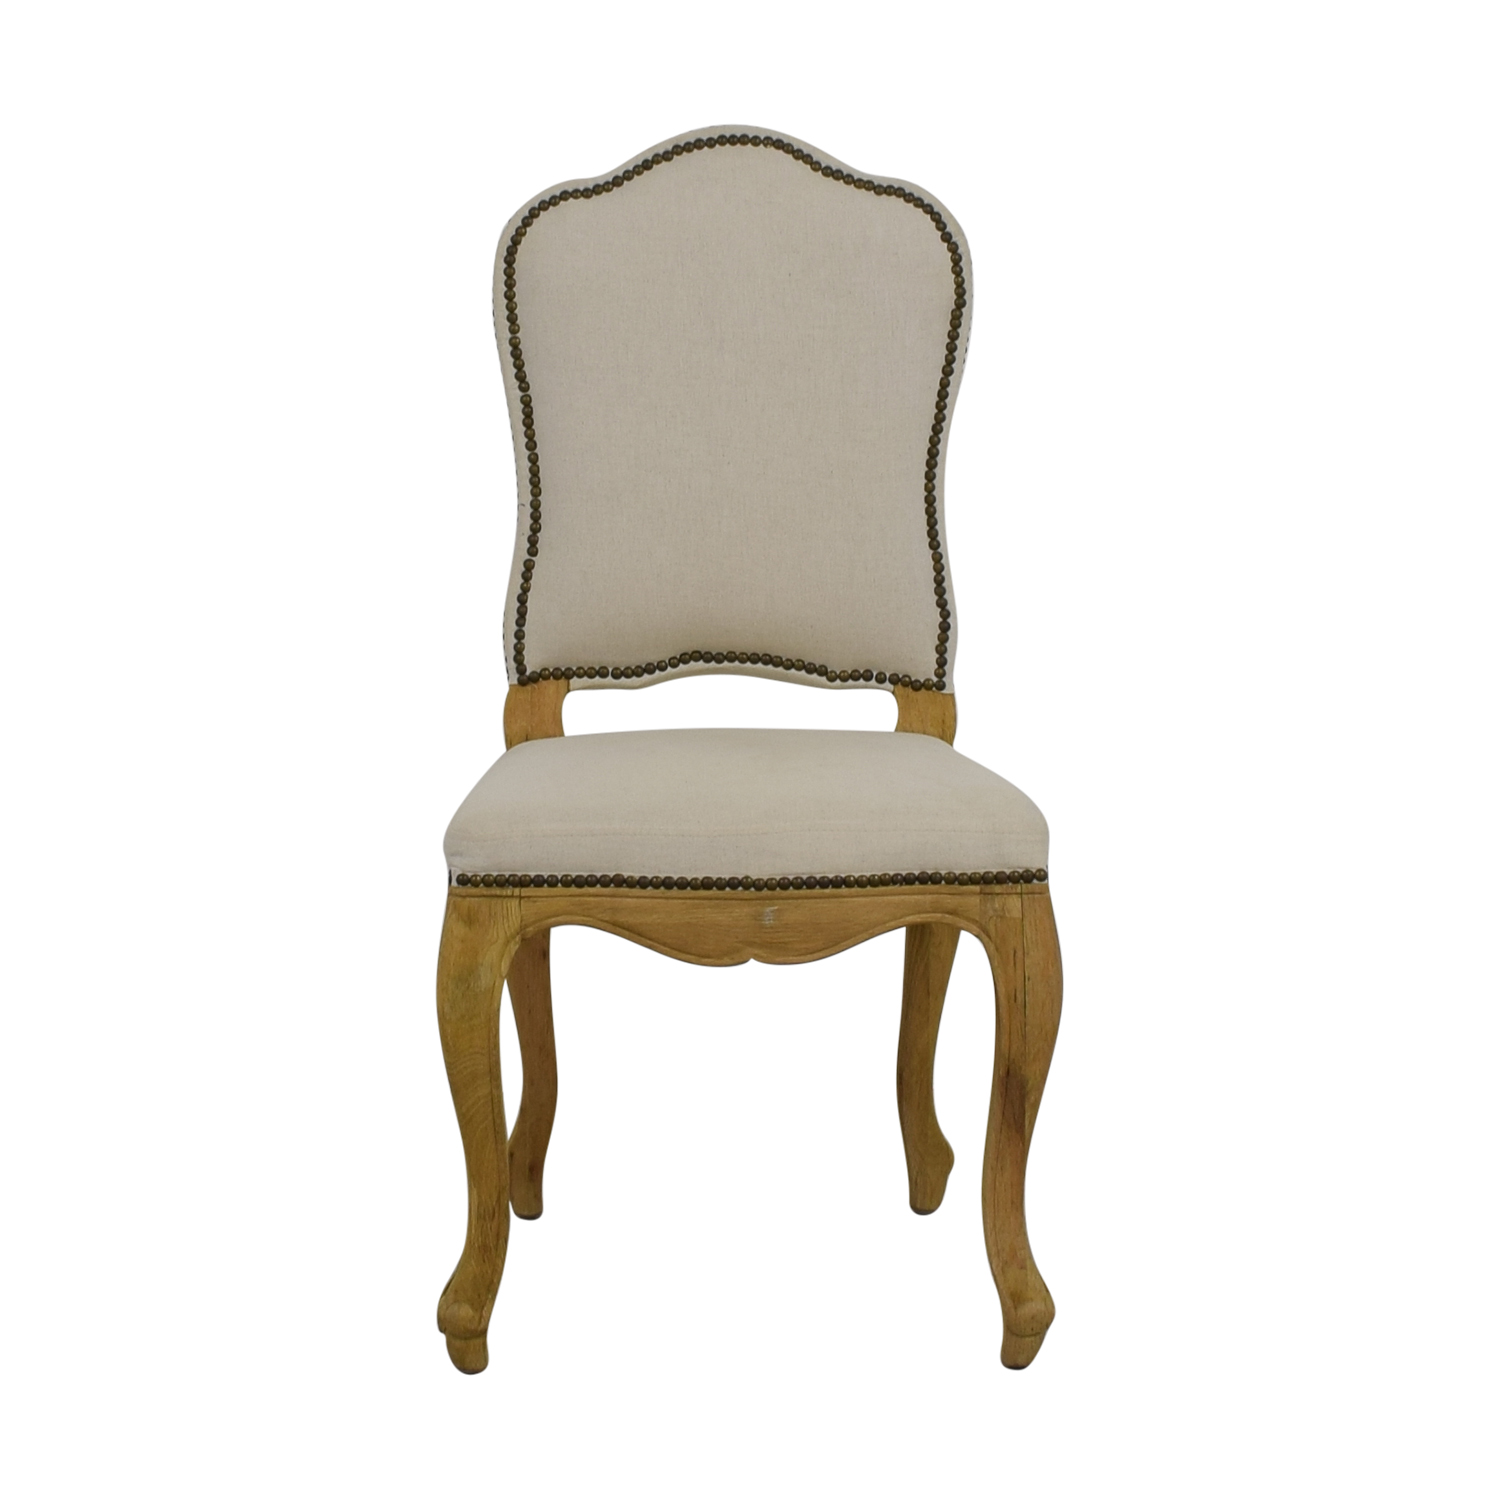 Restoration Hardware Beige Nailhead Accent Chair / Chairs